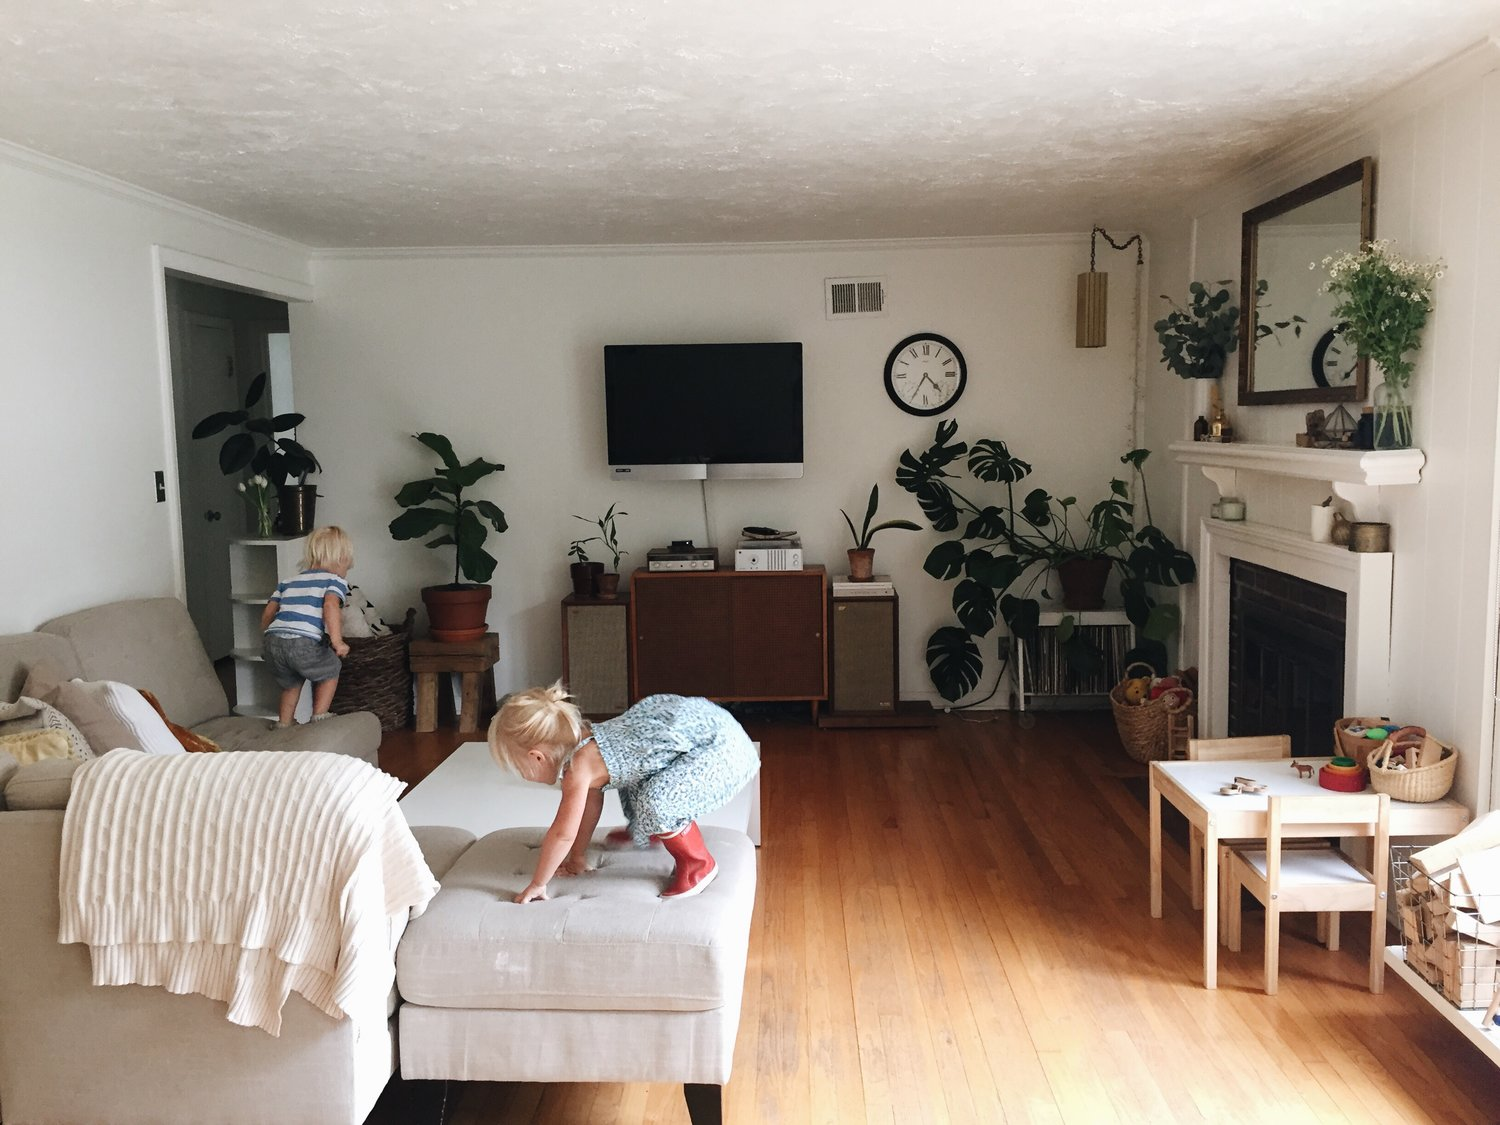 HOME TOUR: BEV WEIDNER — The School of Styling